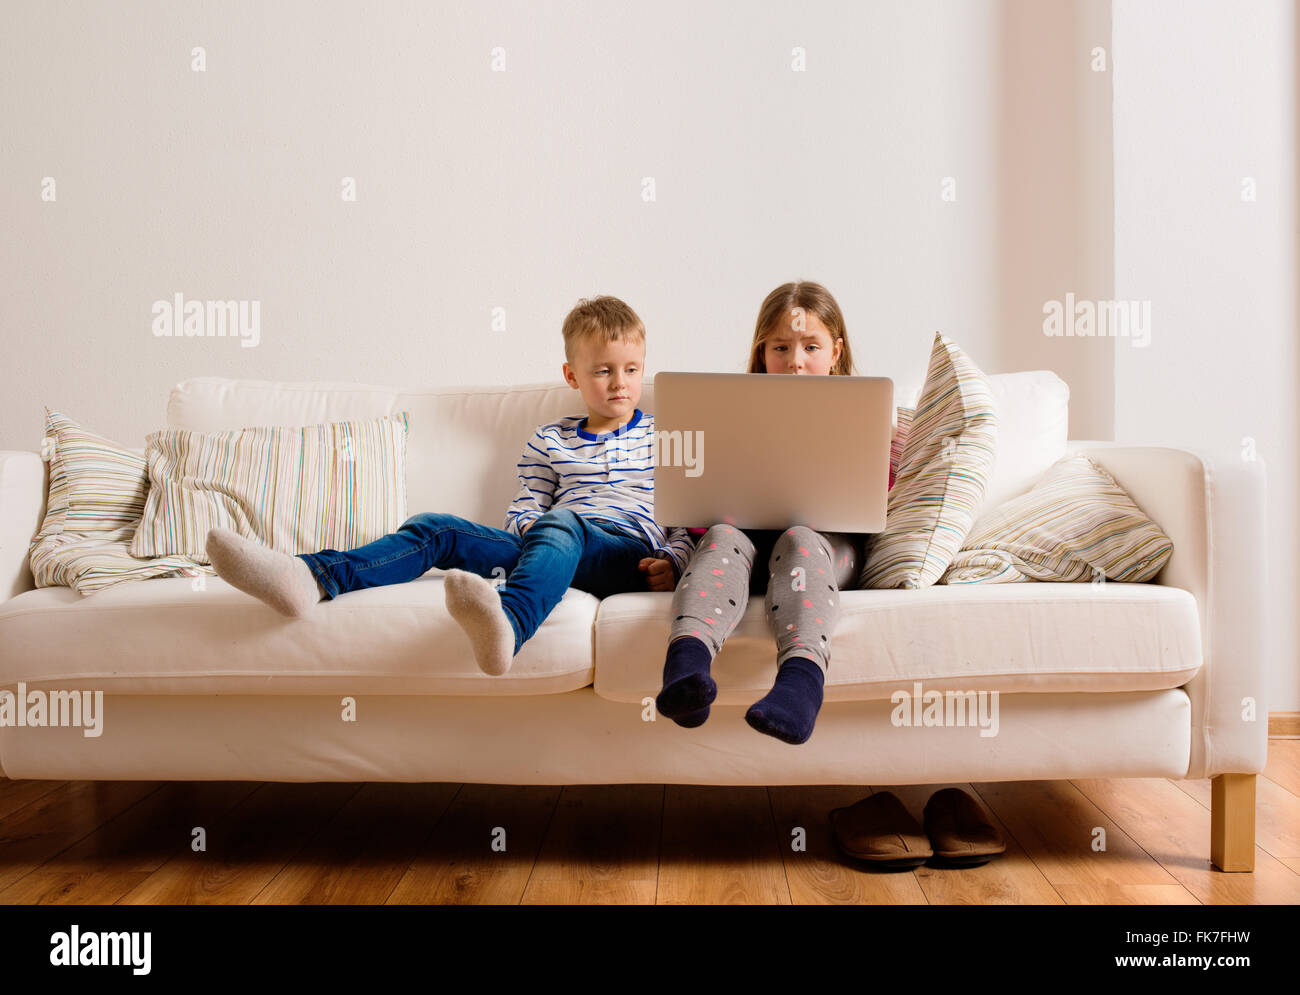 Children at home sitting on sofa, playing with laptop - Stock Image